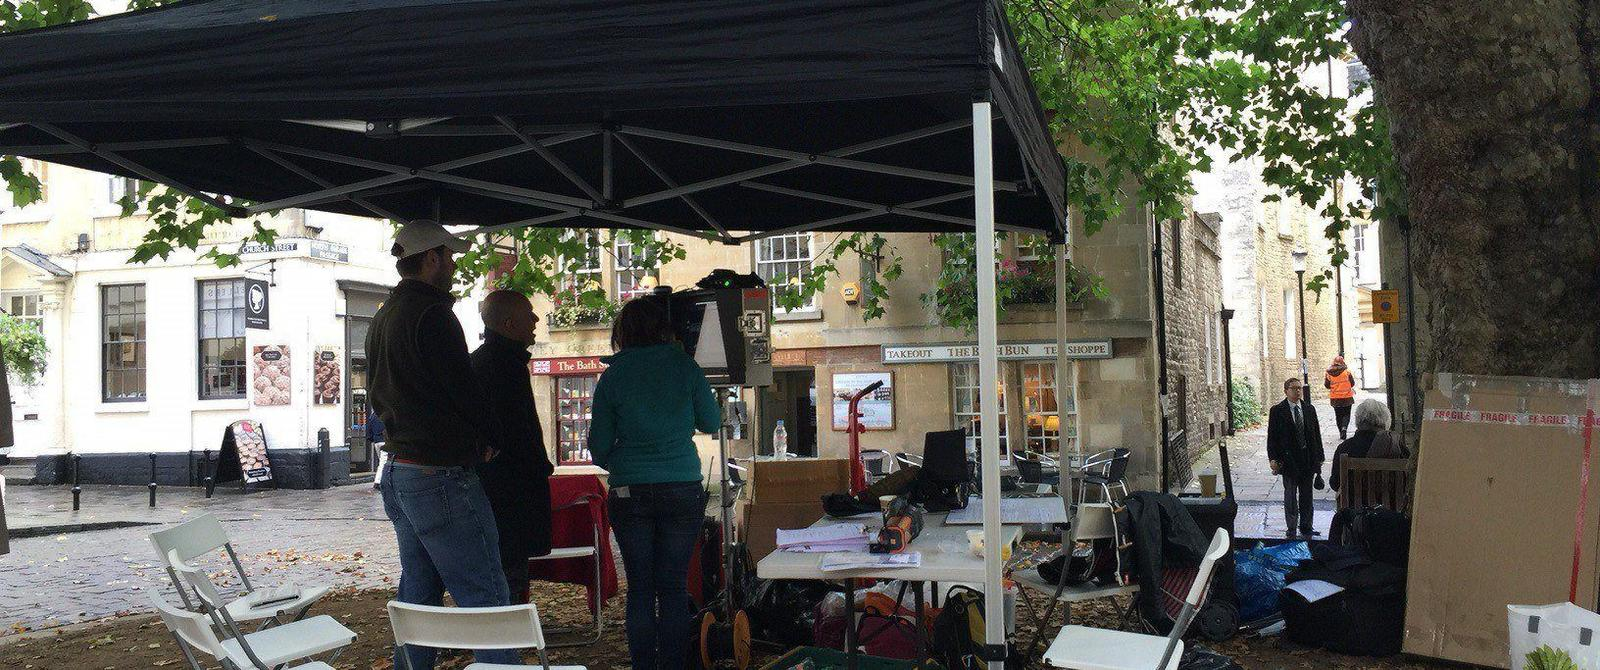 image:filming in Abbey Green